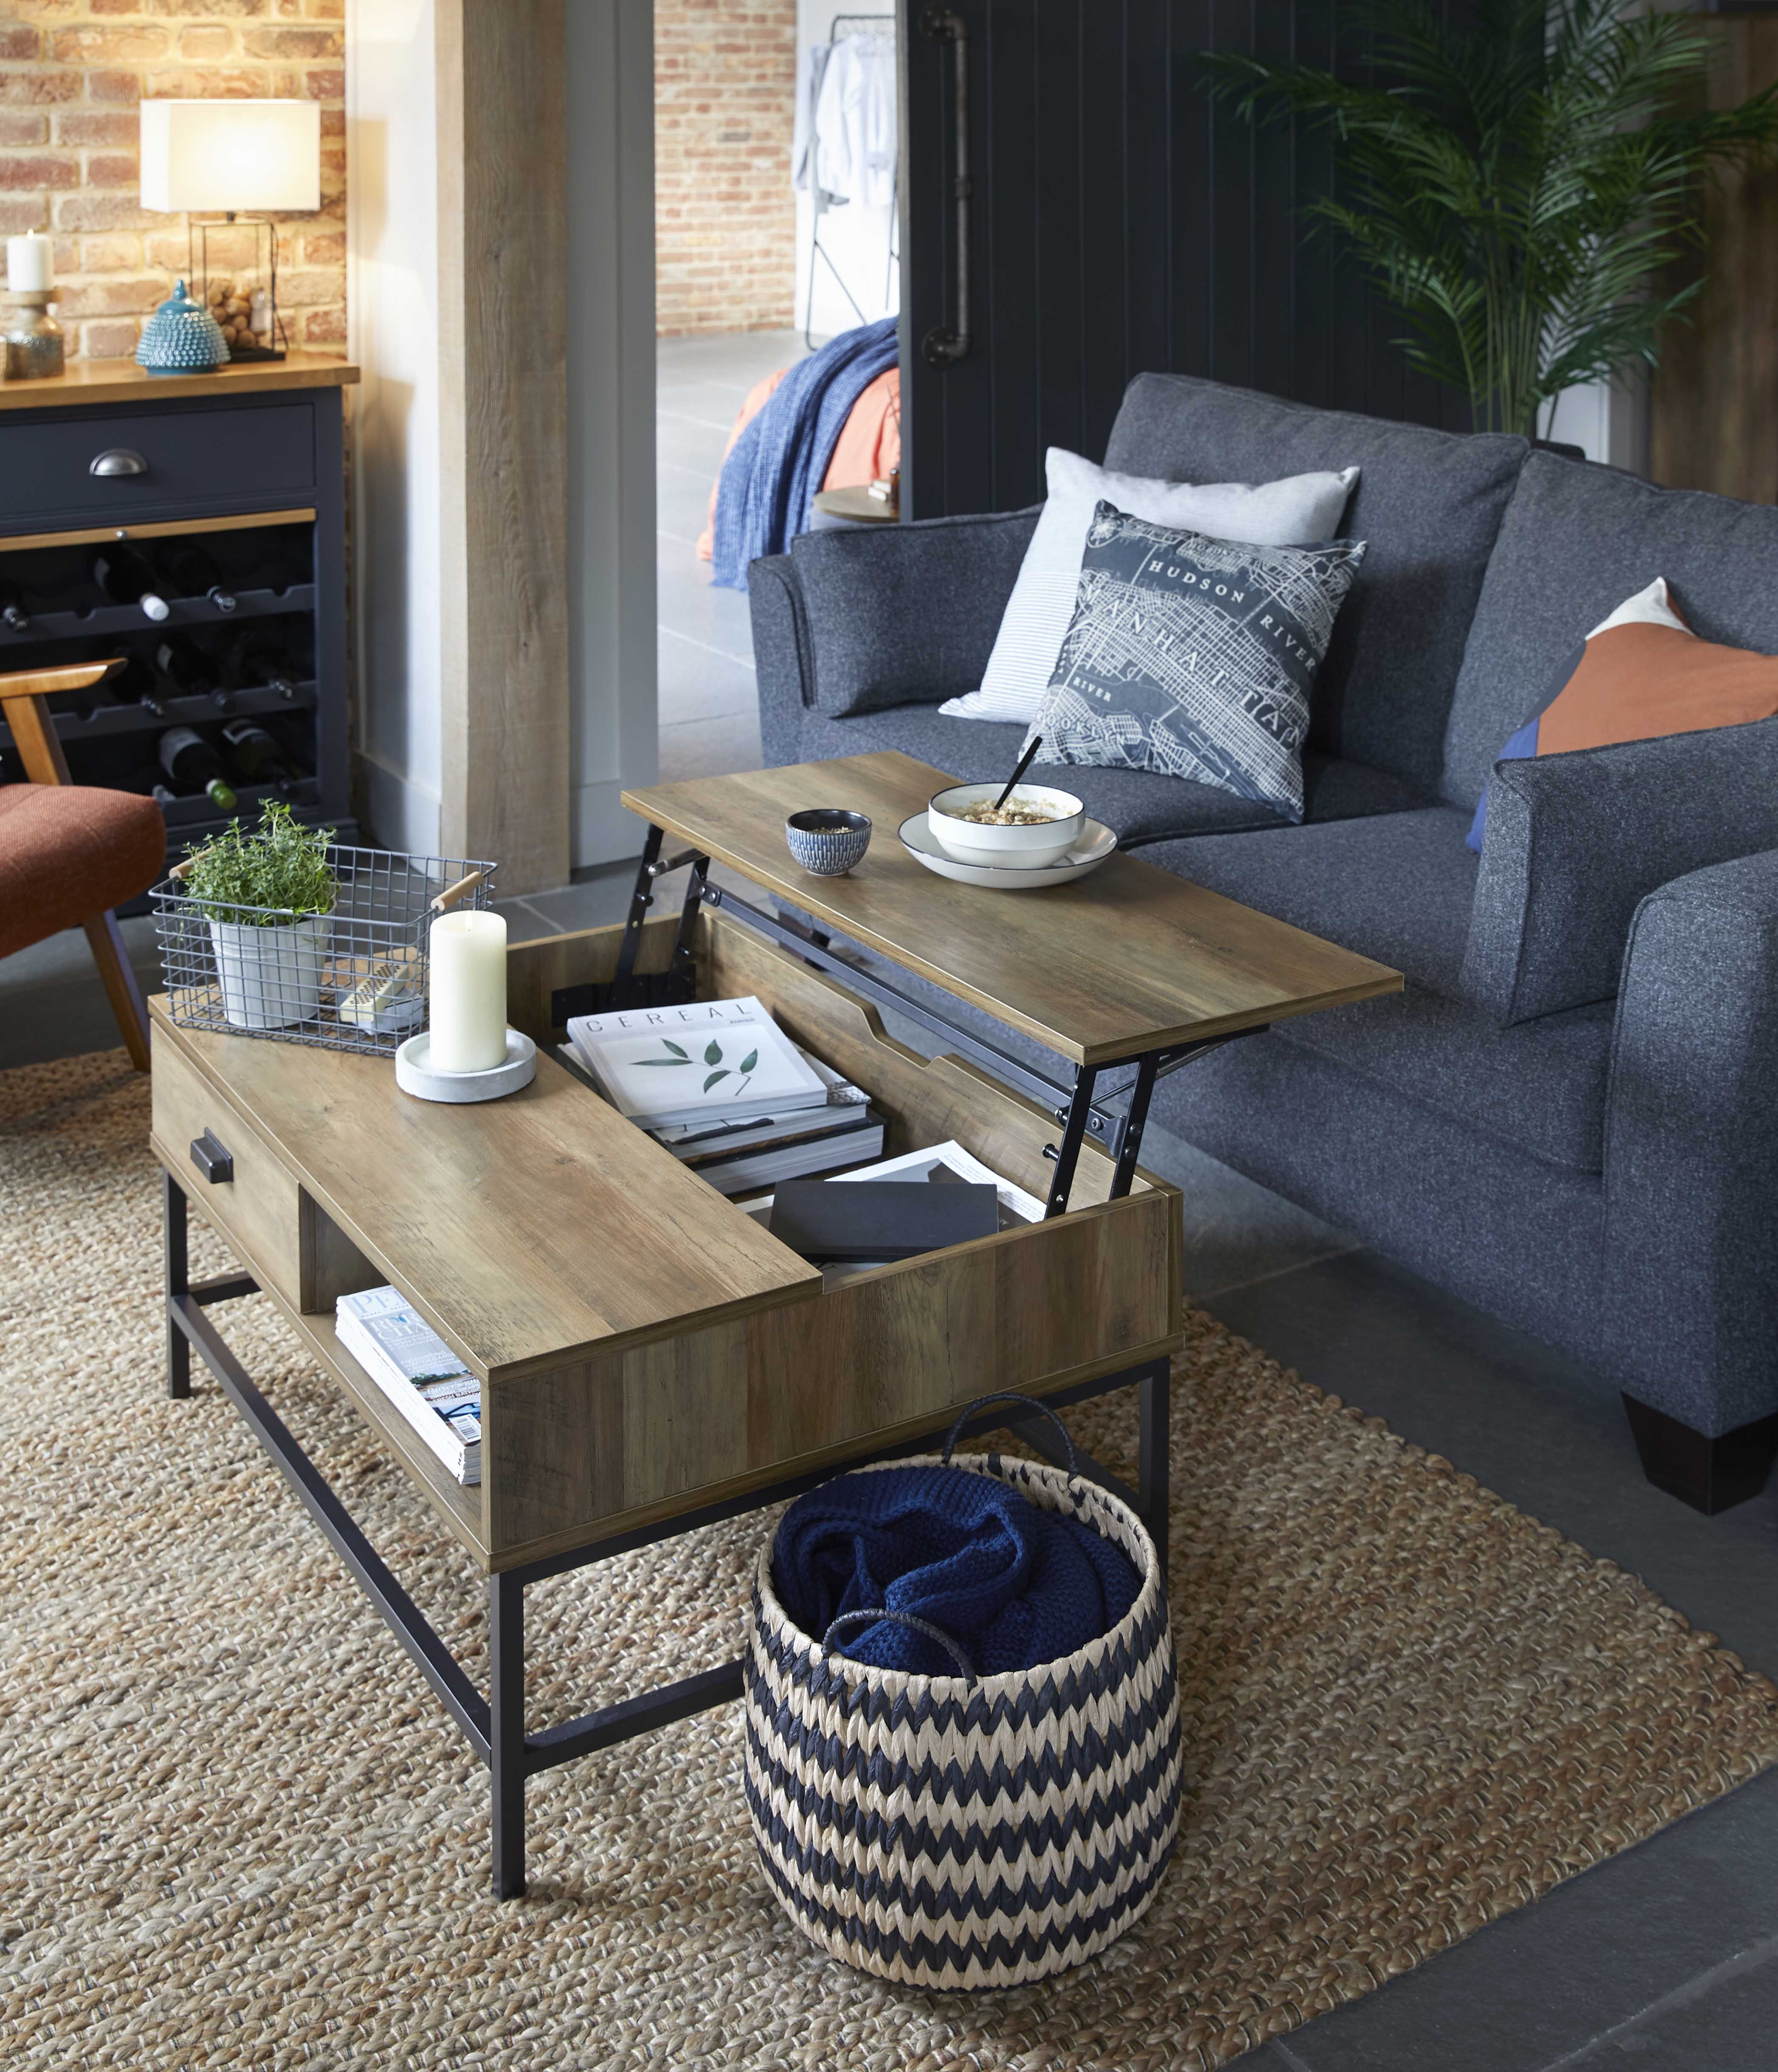 The Best Sofa Brands 12 Top Places To Shop For A New Sofa Coffee Table For Small Living Room Small Living Room Furniture Living Room Coffee Table [ 4877 x 4186 Pixel ]